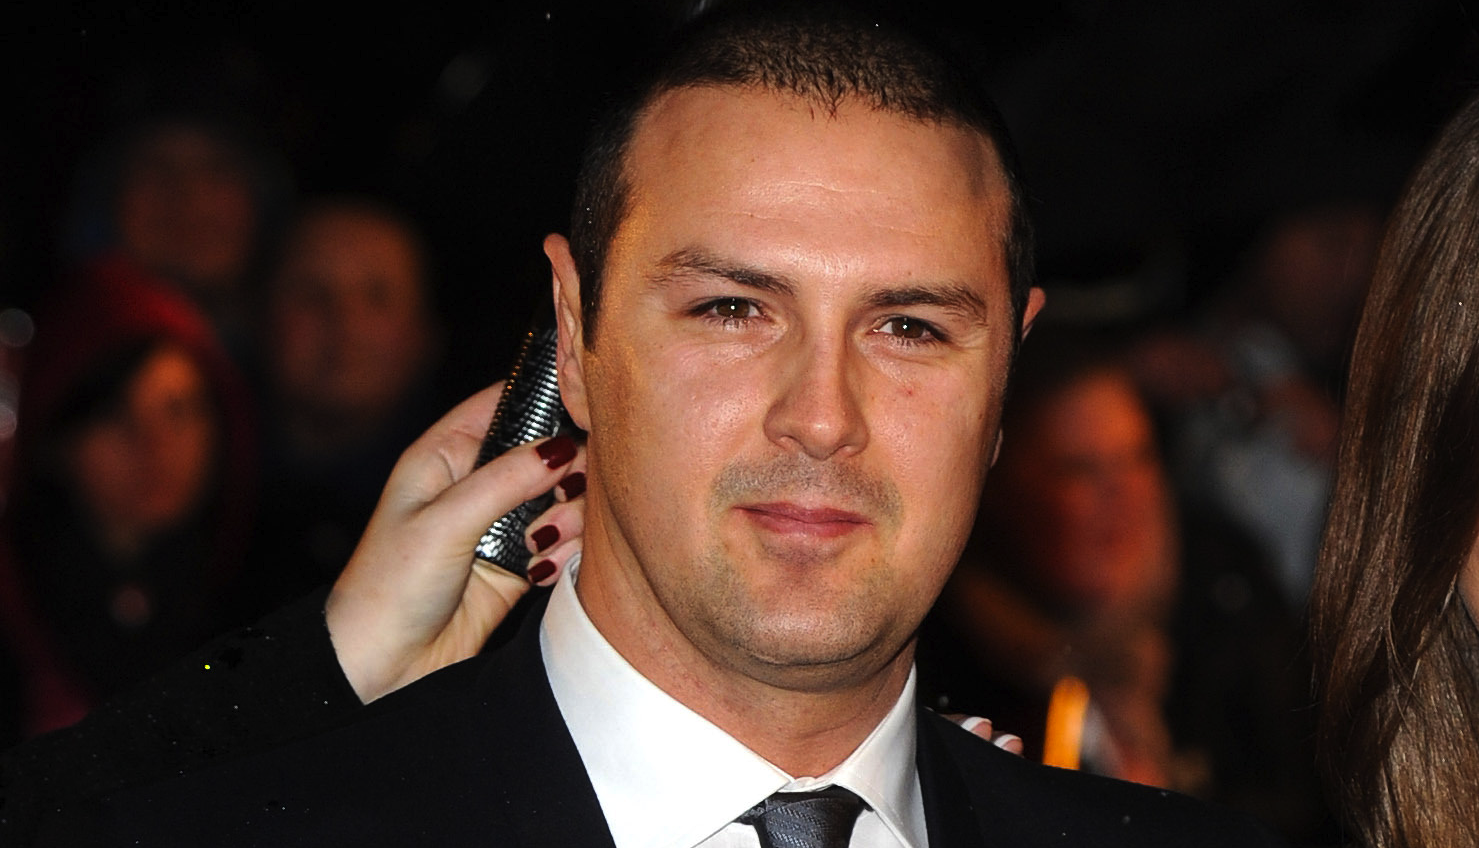 Paddy McGuinness stuns fans with naked Instagram photo